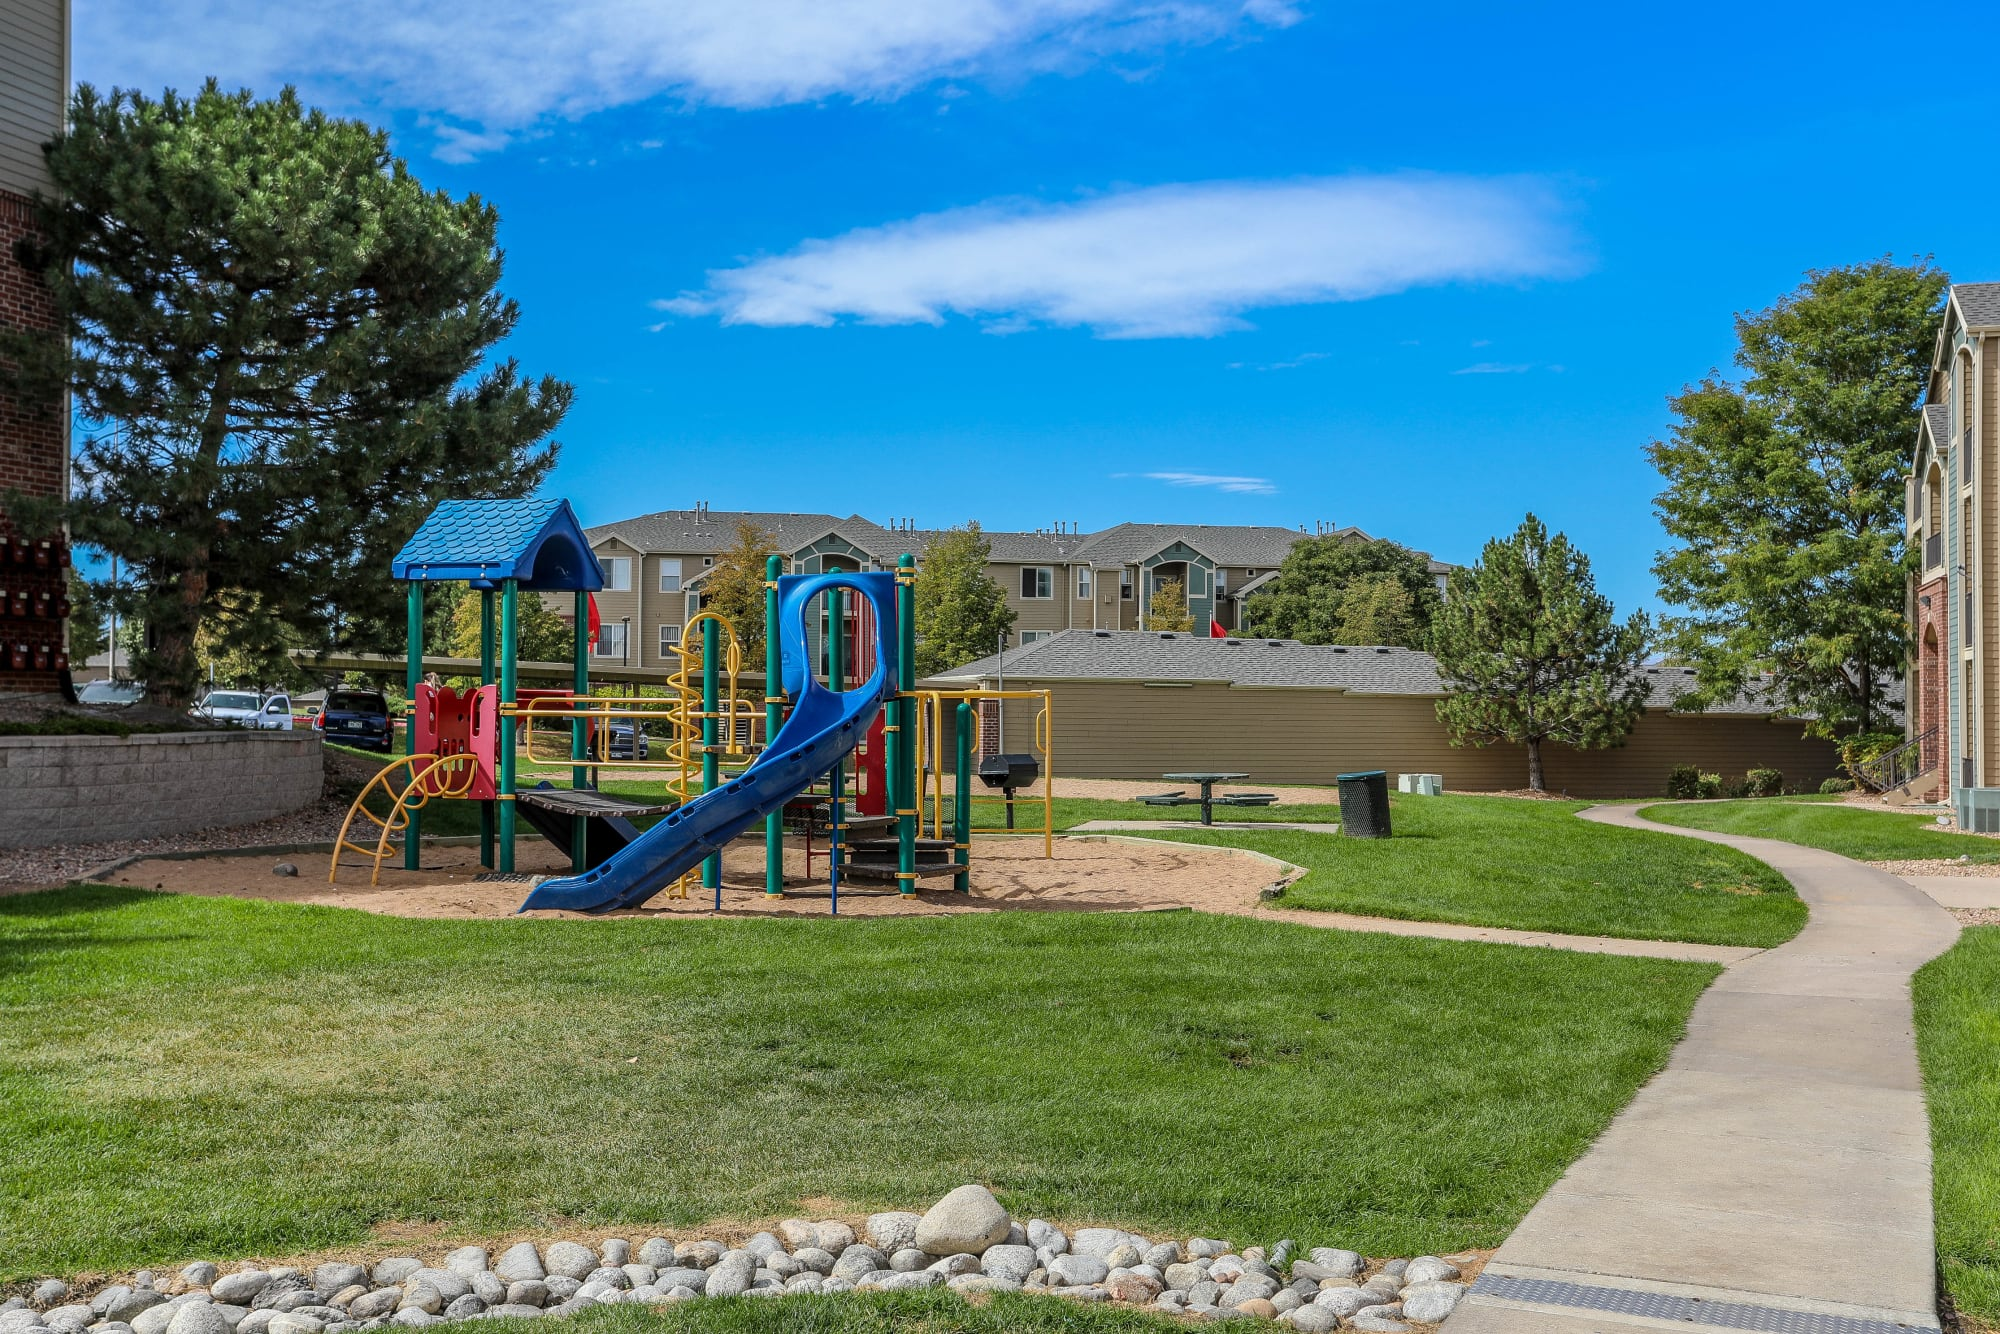 Playground and open landscaping at Promenade at Hunter's Glen Apartments in Thornton, Colorado